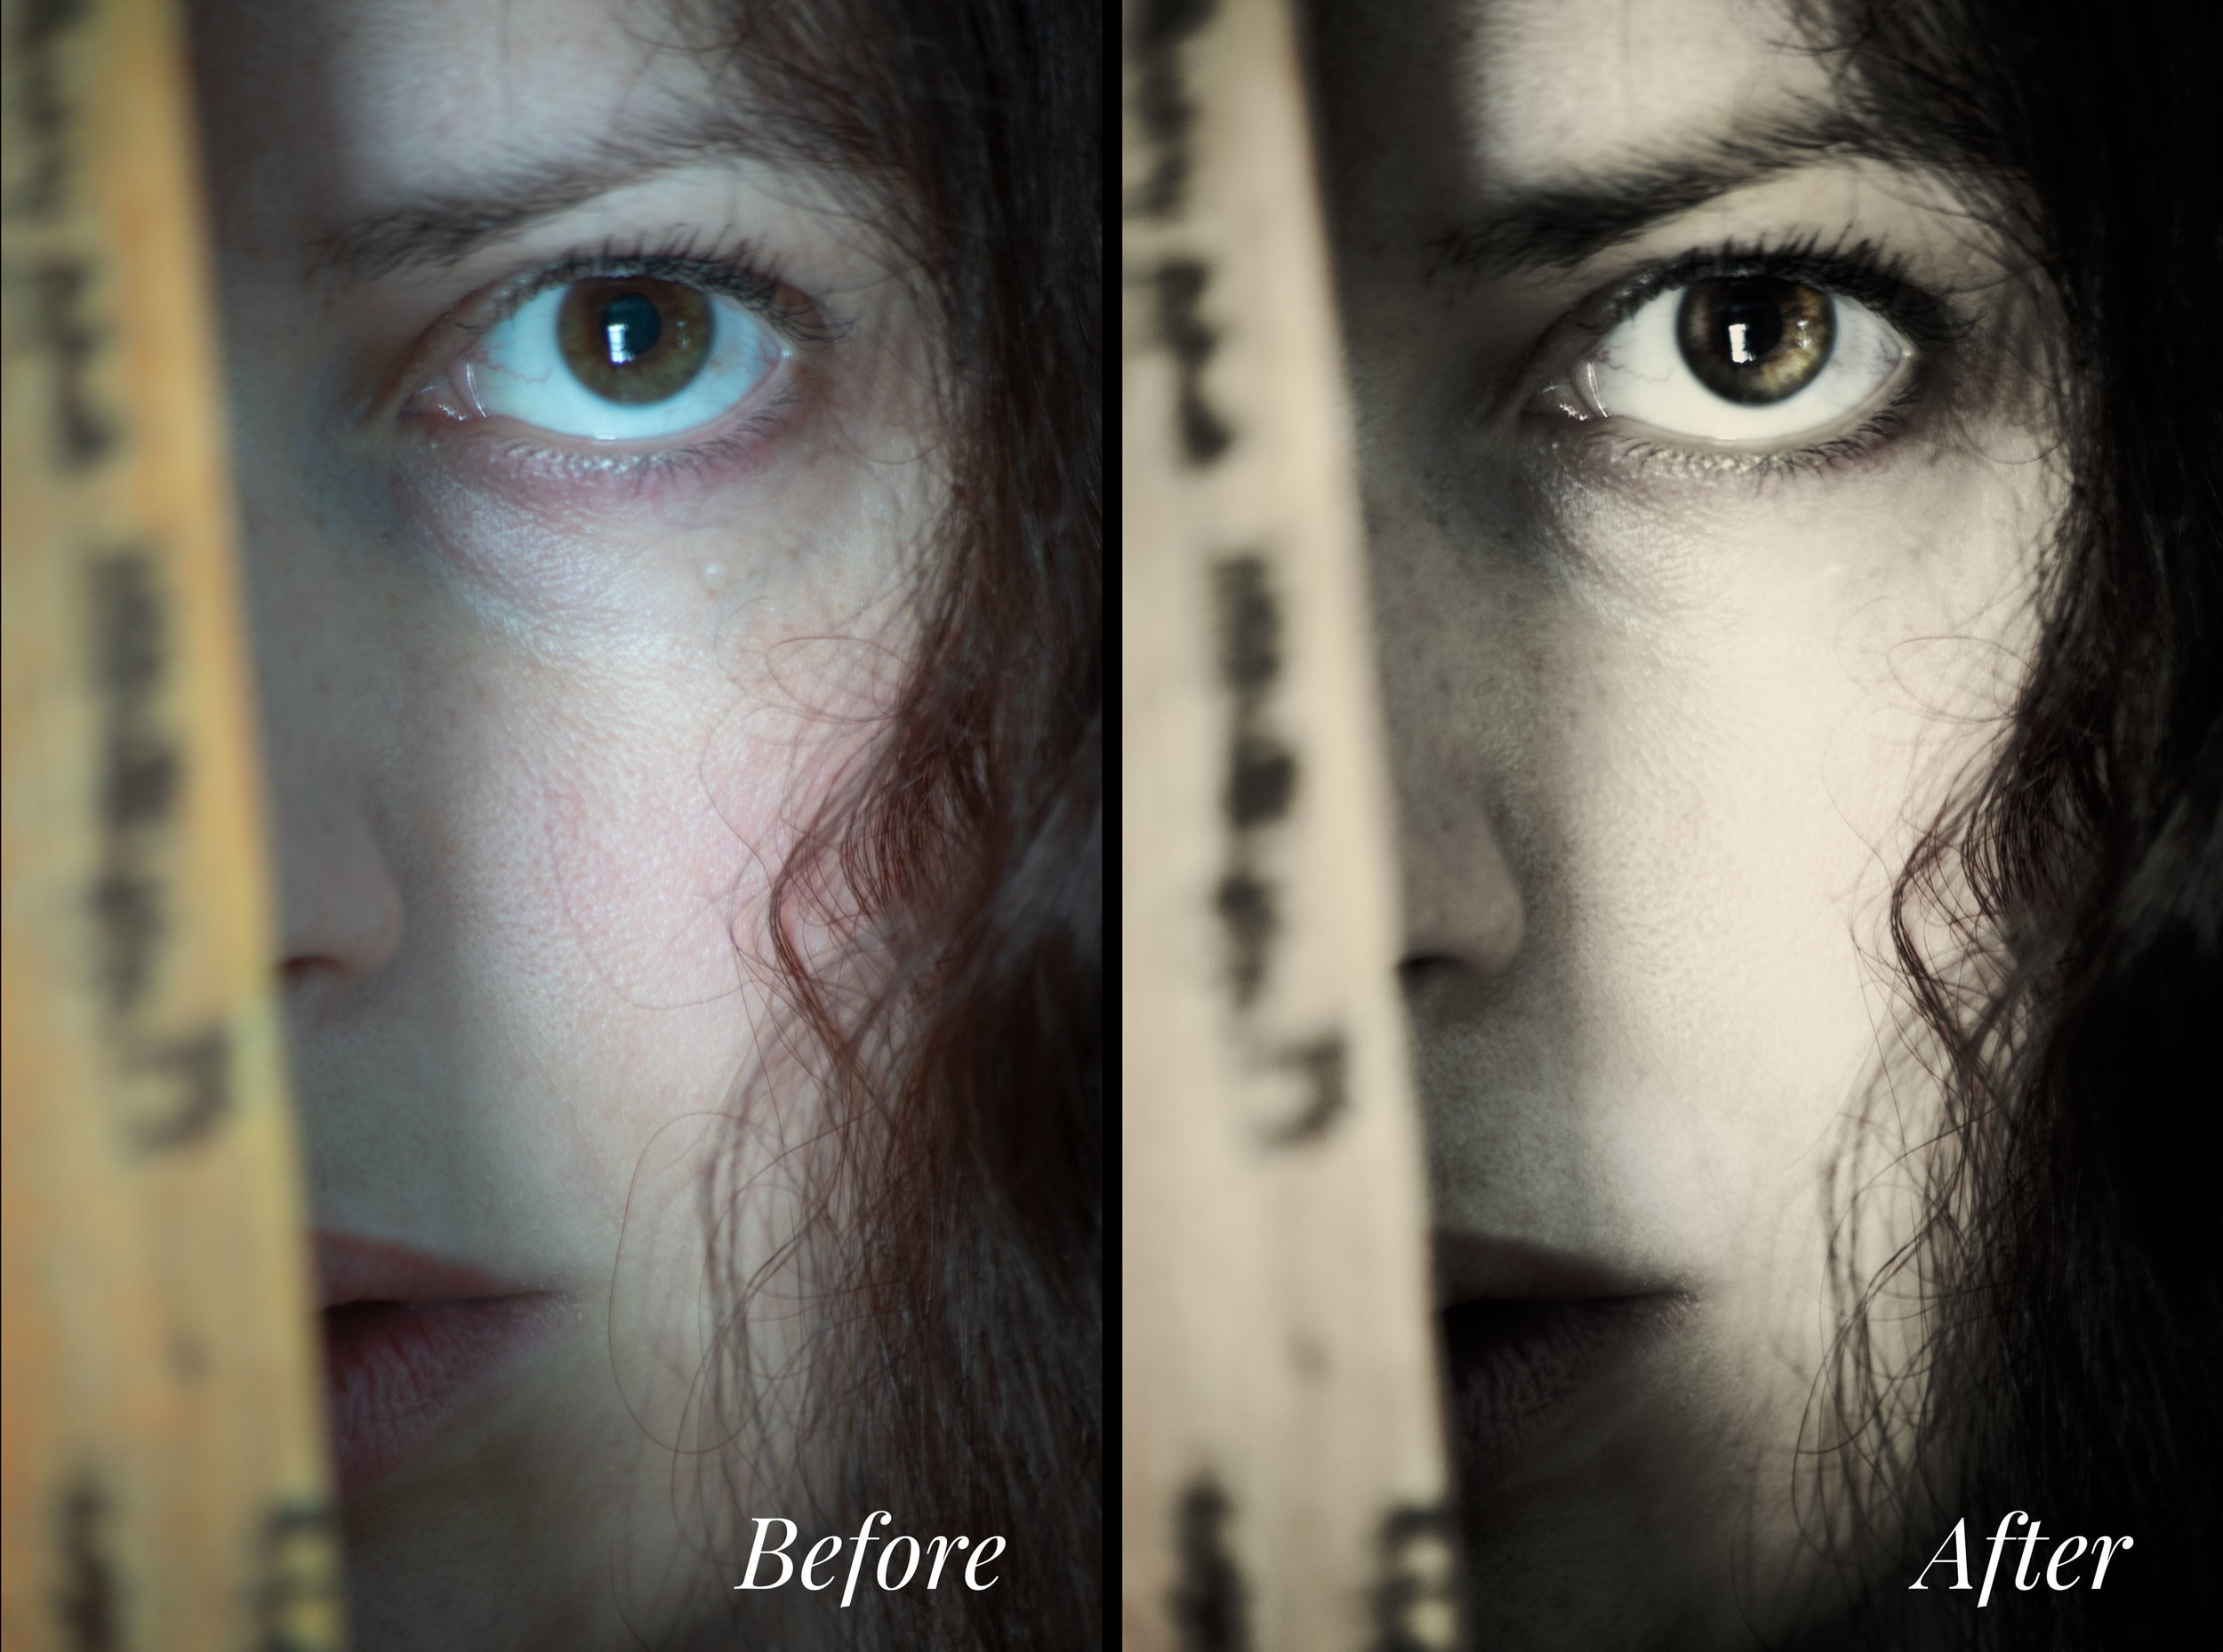 photography-licensing-theme-challenge-editing-comparison.jpg